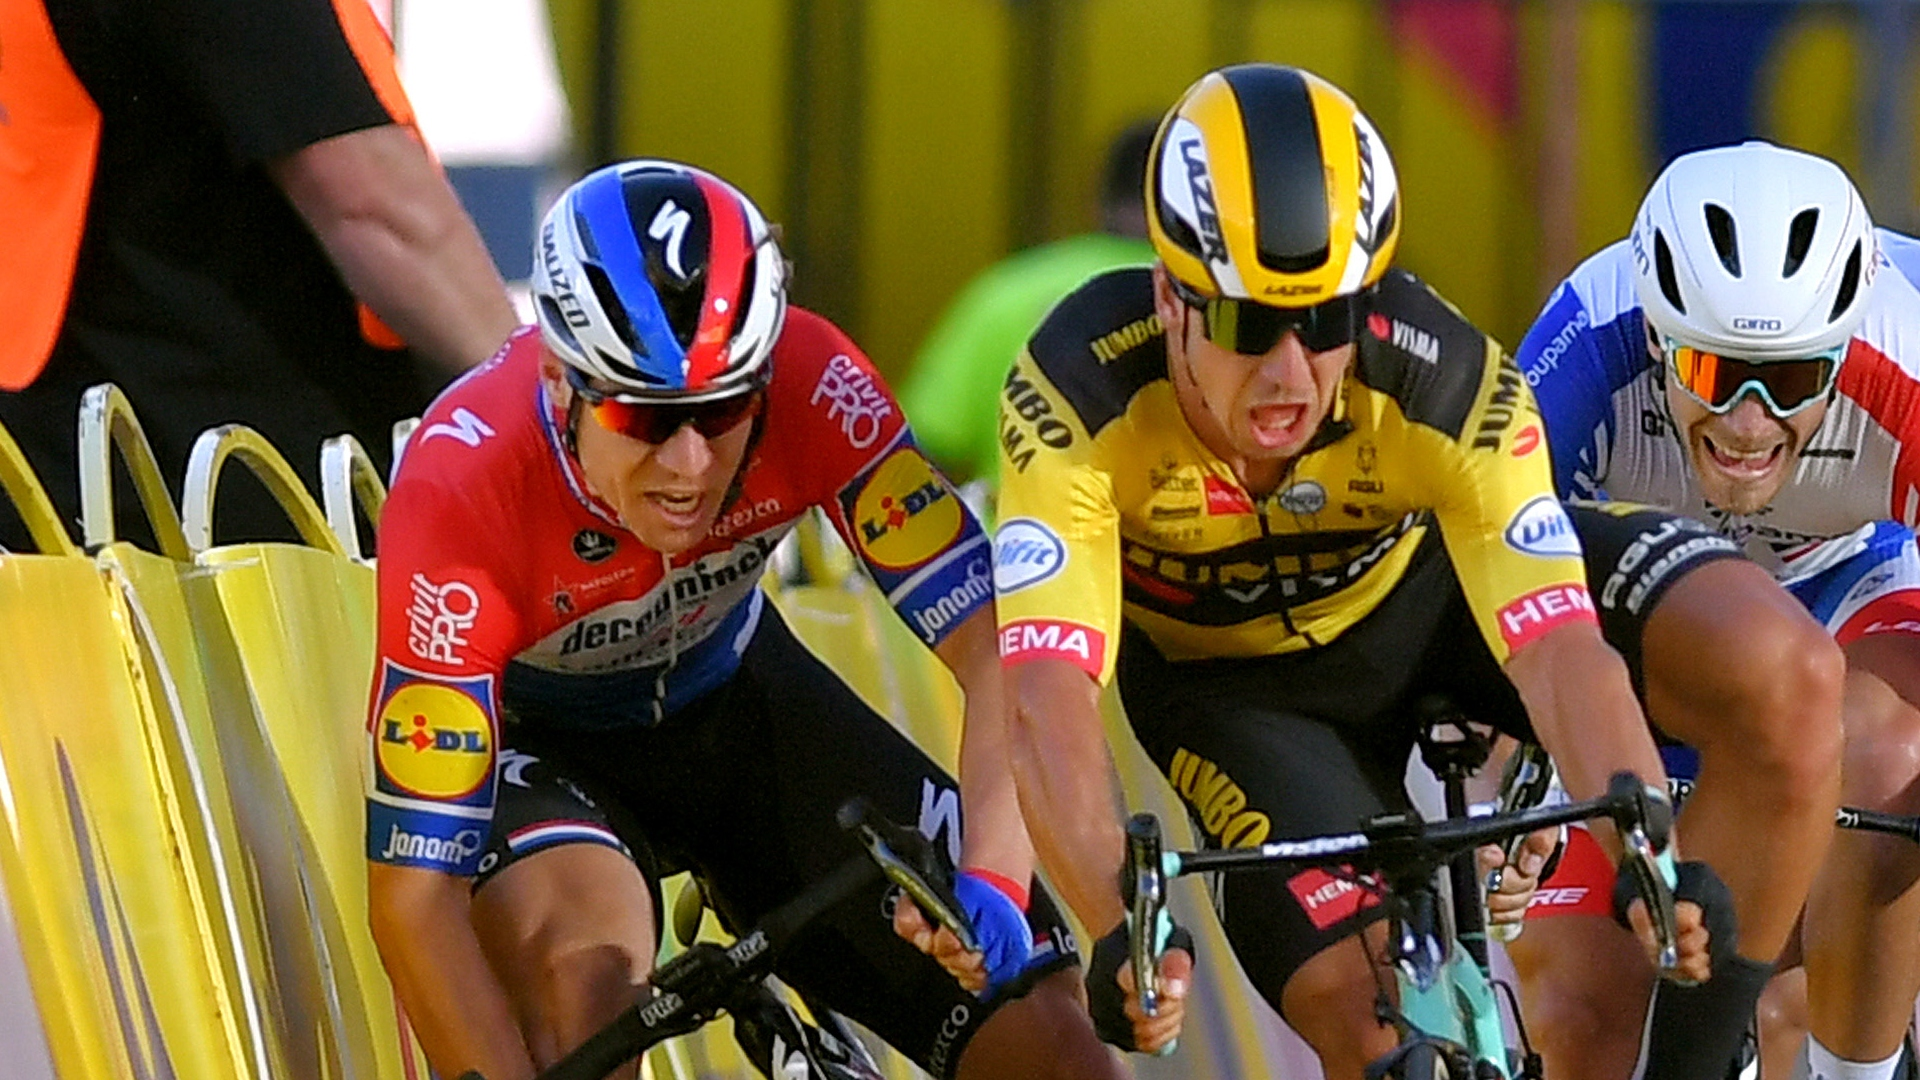 The UCI has issued a nine-month ban to Dylan Groenewegen after the incident that left Fabio Jakobsen fighting for his life.